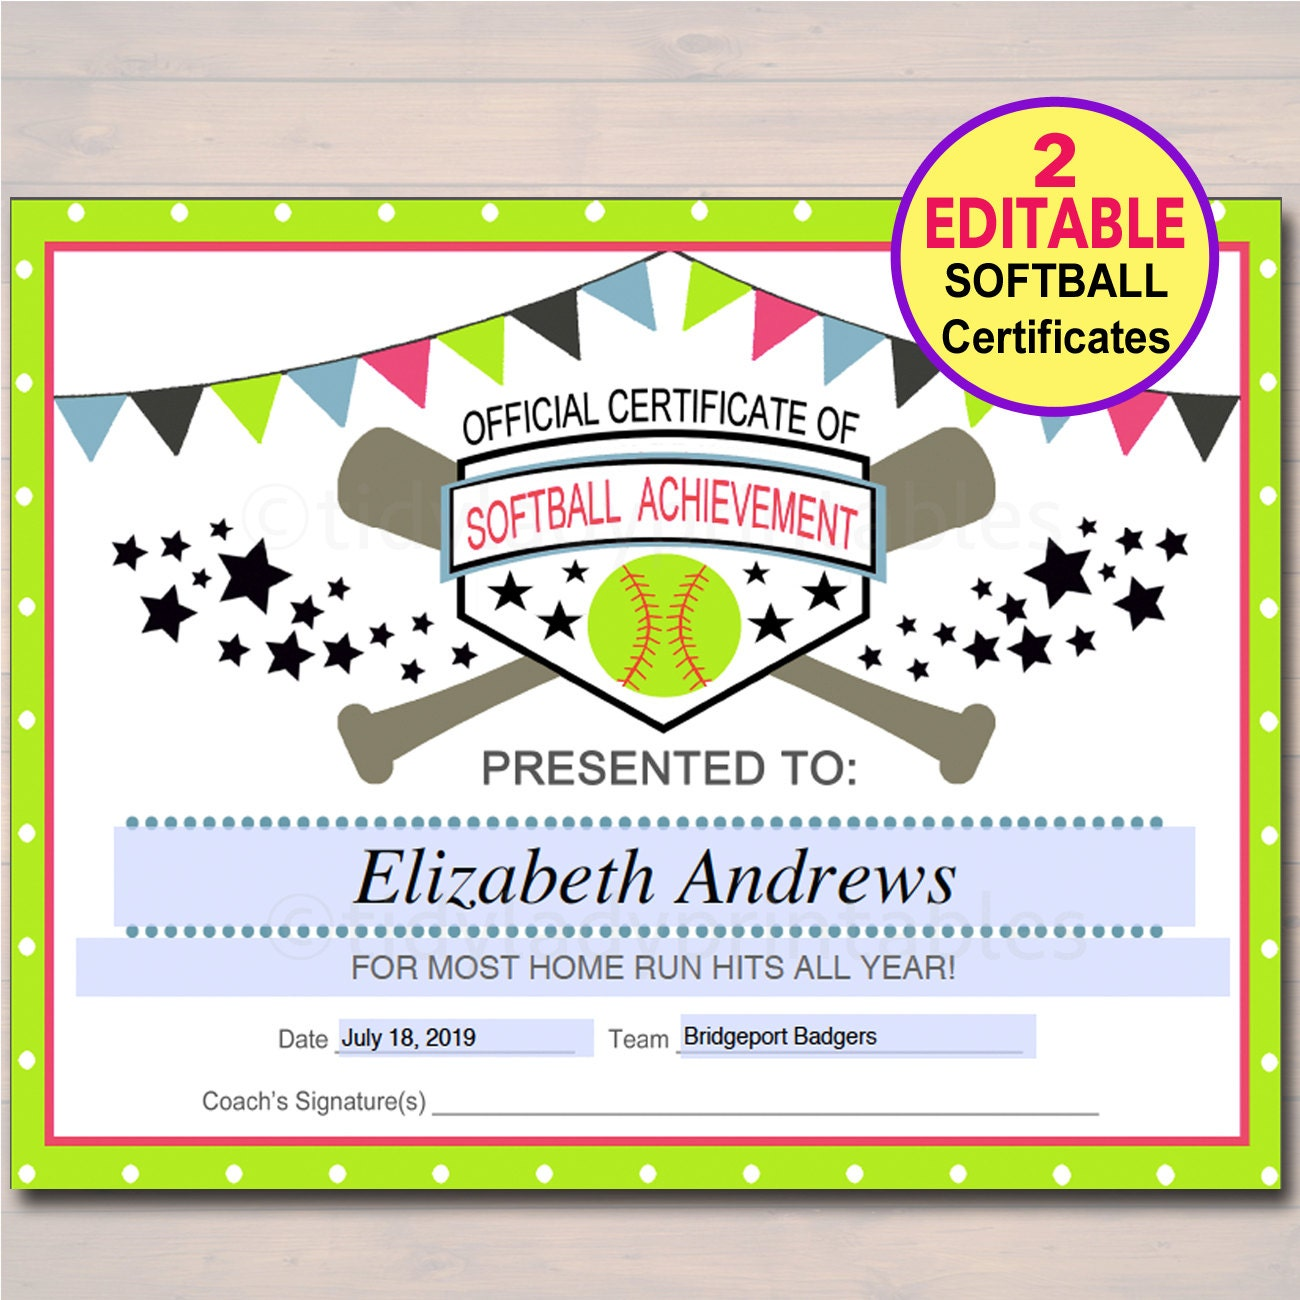 Editable softball certificates instant download softball zoom pronofoot35fo Choice Image